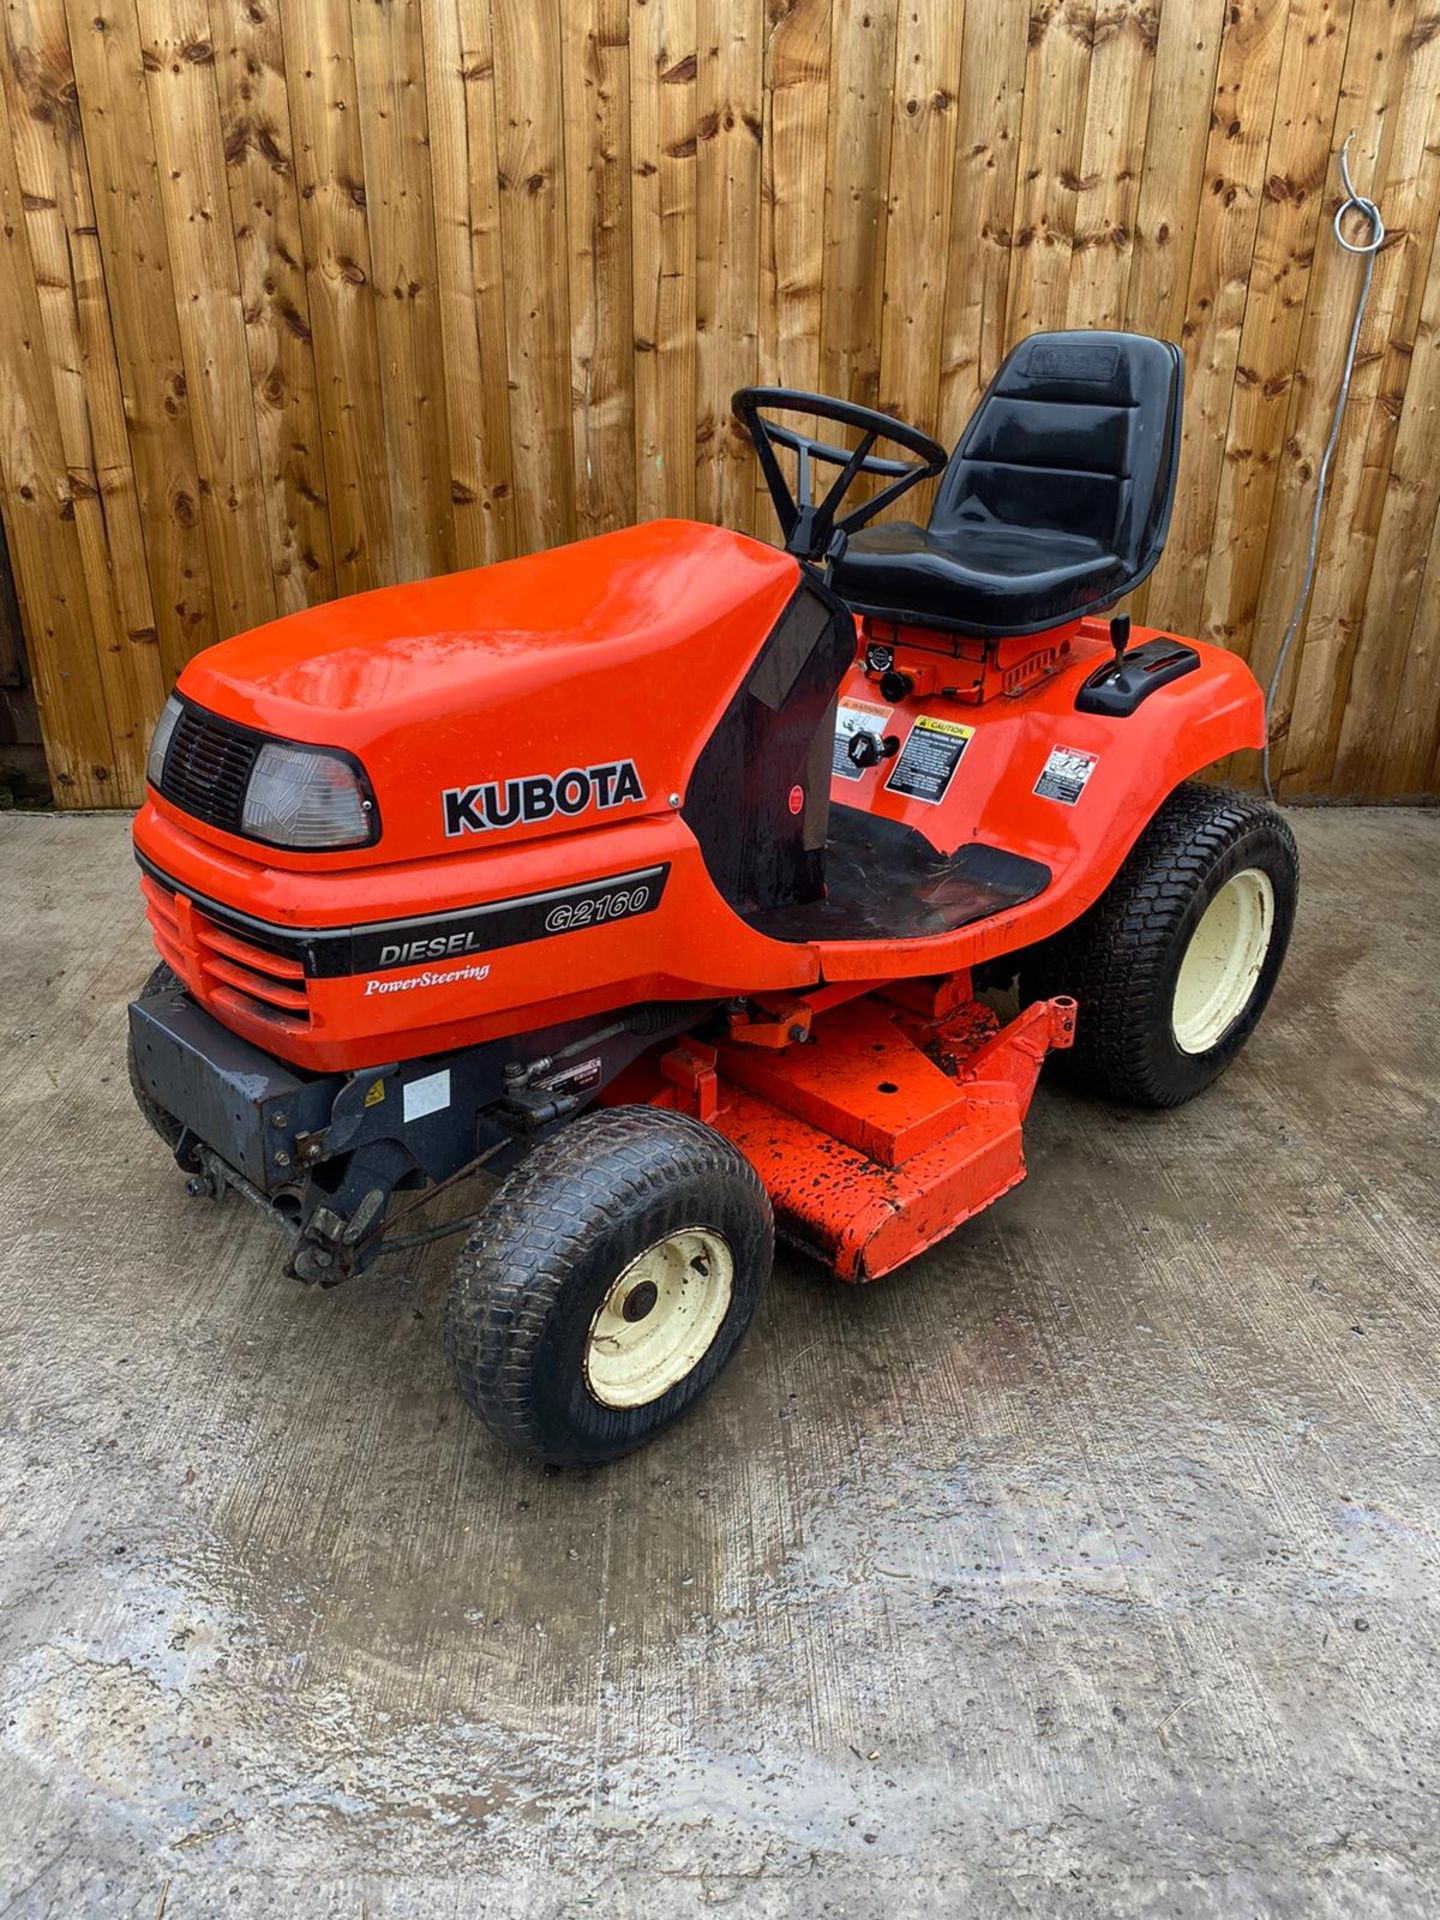 2009 KUBOTA G2160 DIESEL RIDE ON LAWN MOWER, IN EXCELLENT CONDITION *PLUS VAT* - Image 2 of 4